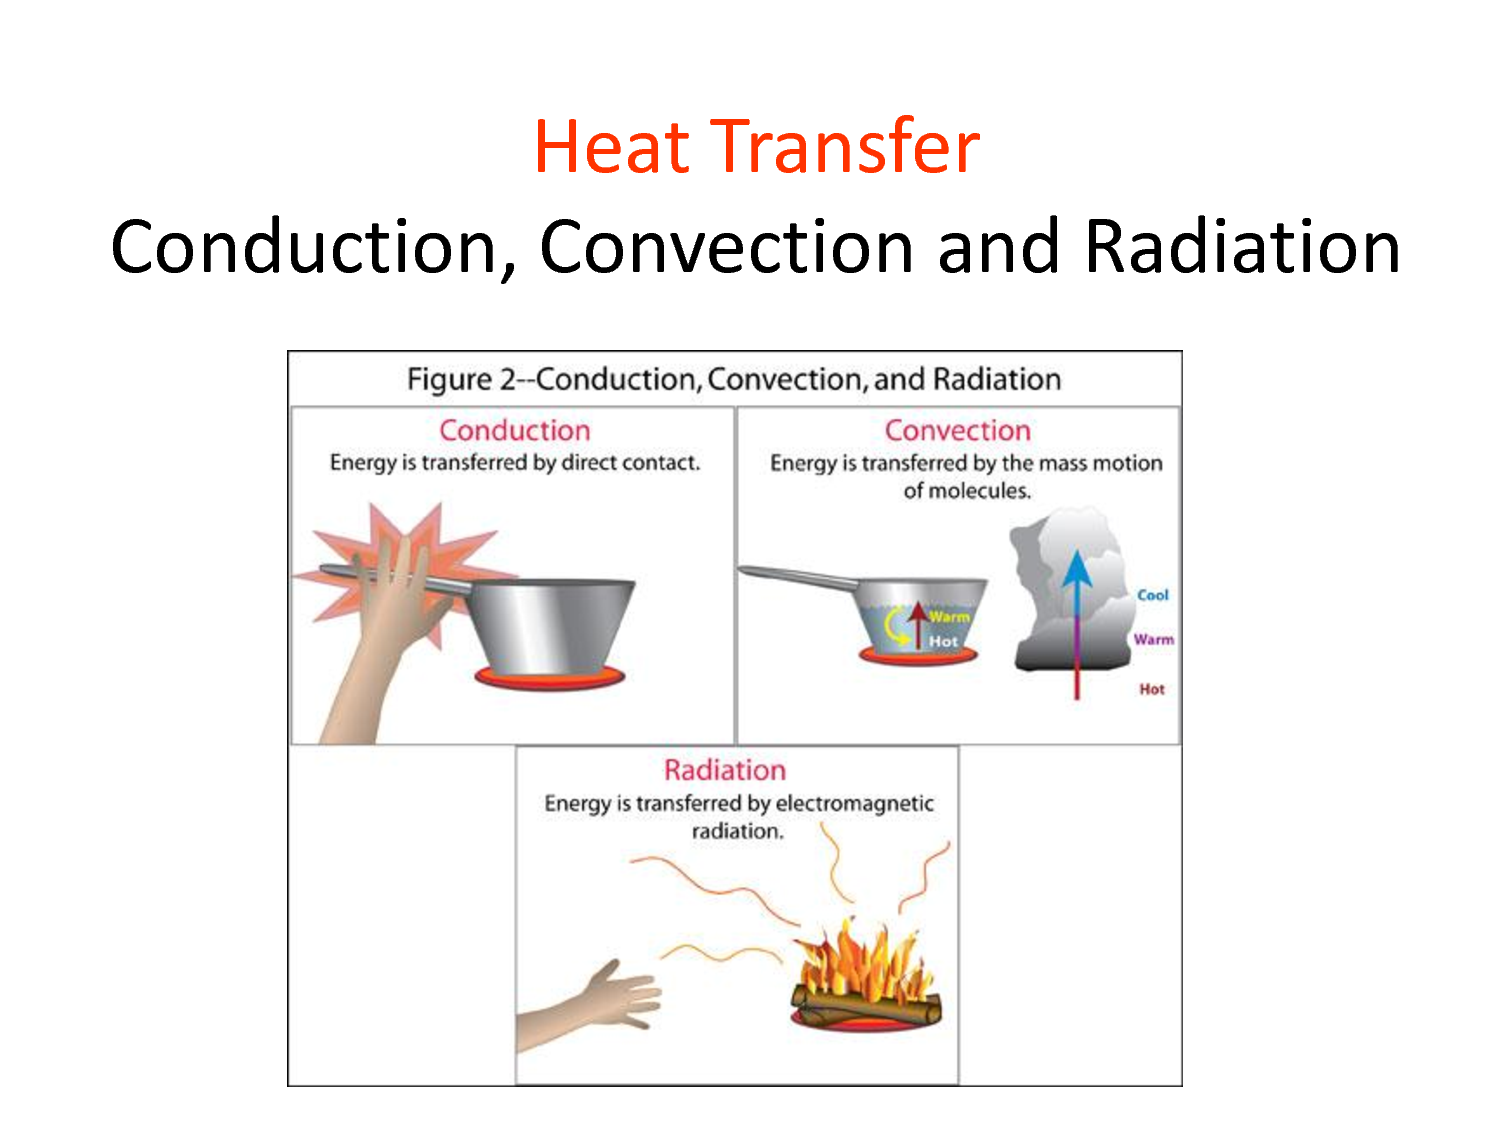 worksheet Convection Conduction Radiation Worksheet pin by restorecon llc on engineering information pinterest methods of heat transfer specific end conduction energy is